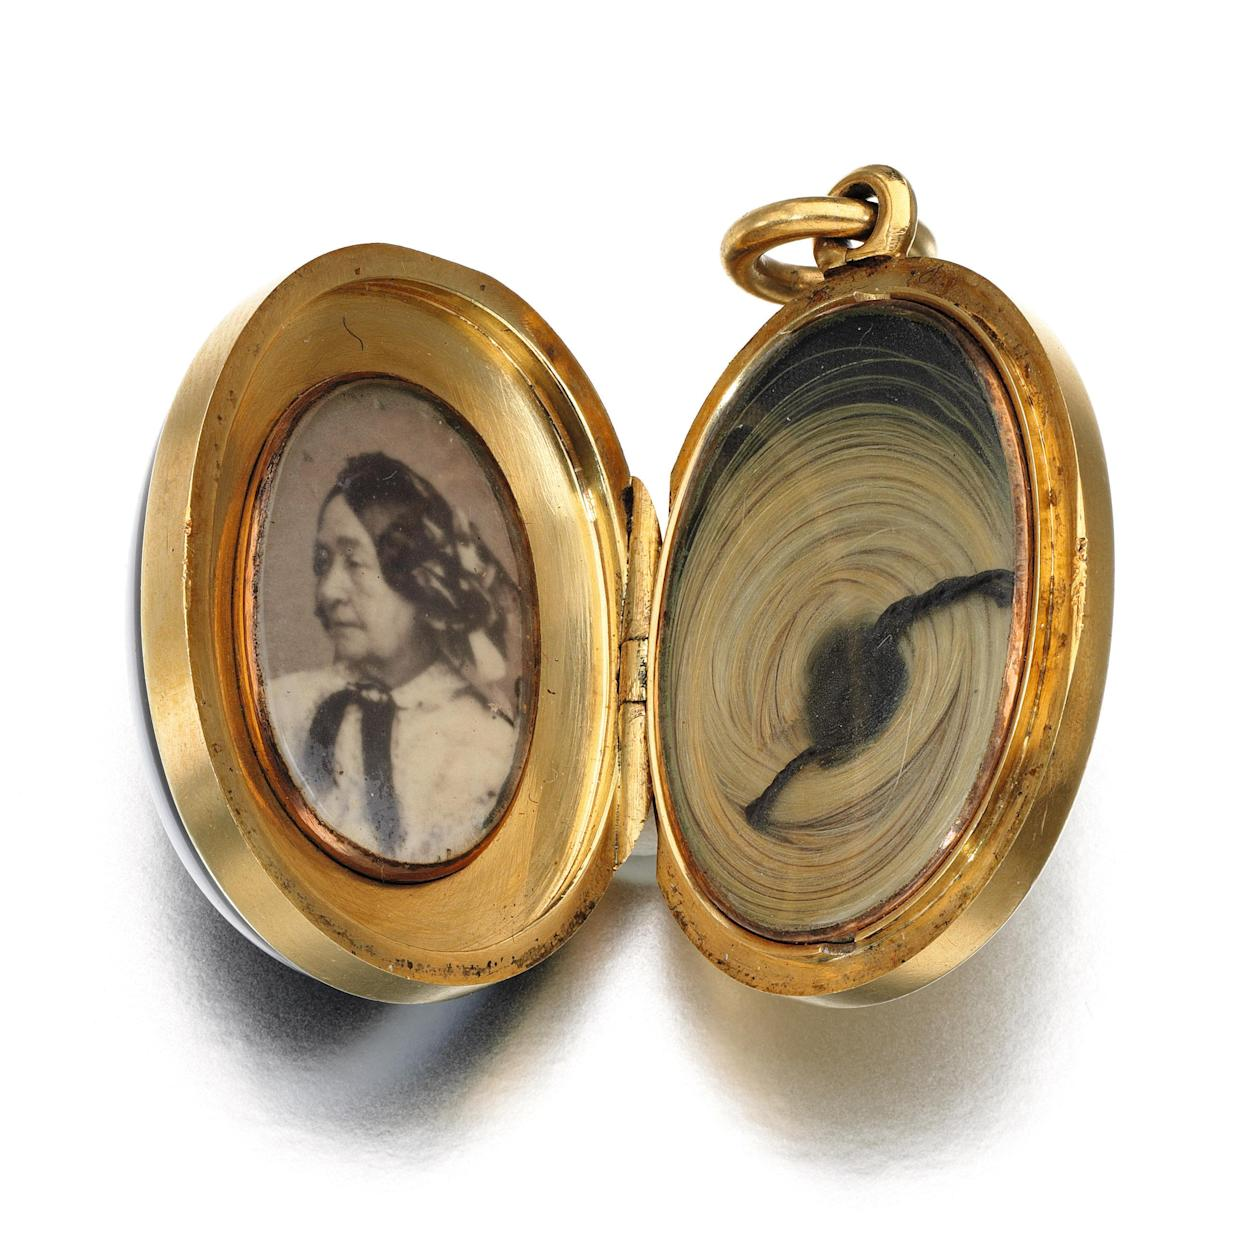 Banded agate and diamond locket, circa 1861 (Sotheby's)